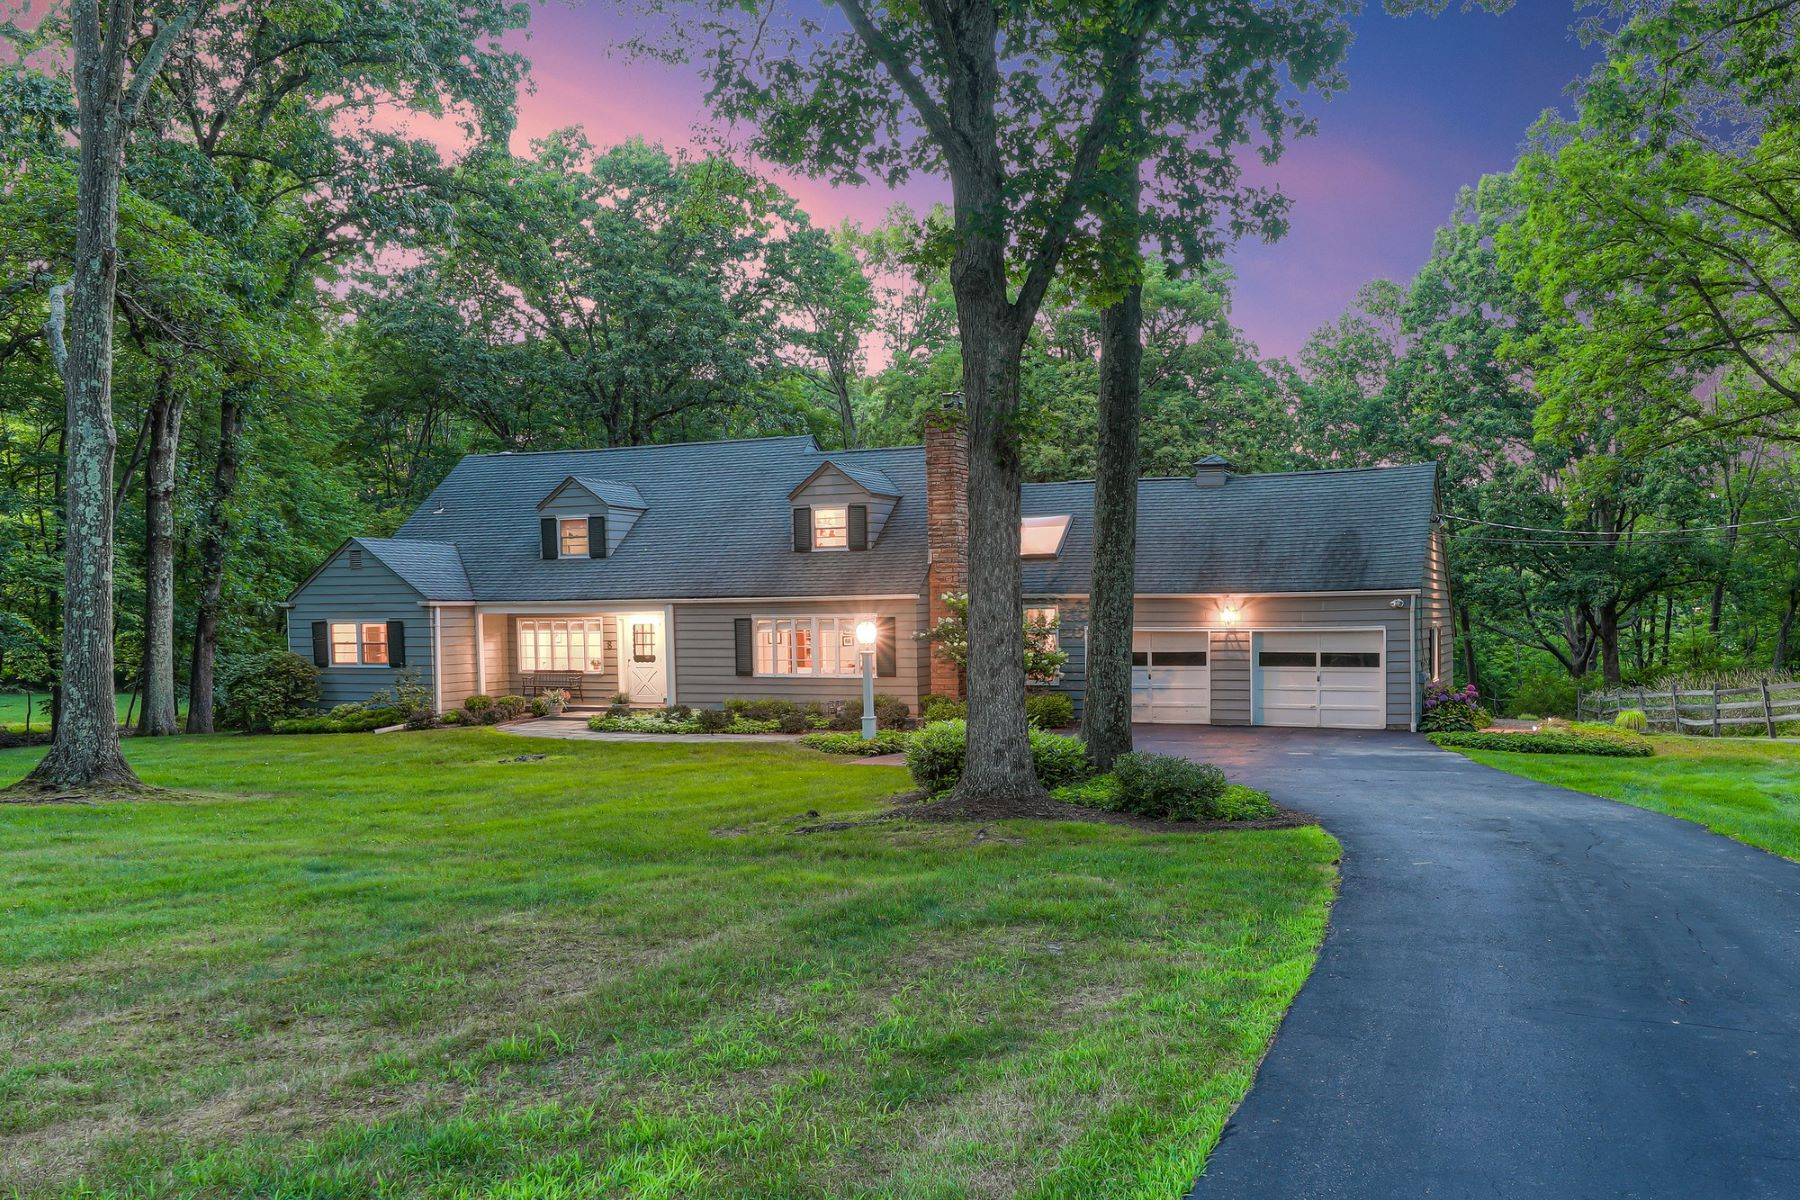 Single Family Homes for Active at Warm and Inviting Cape Cod 8 Yardley Road Mendham, New Jersey 07945 United States